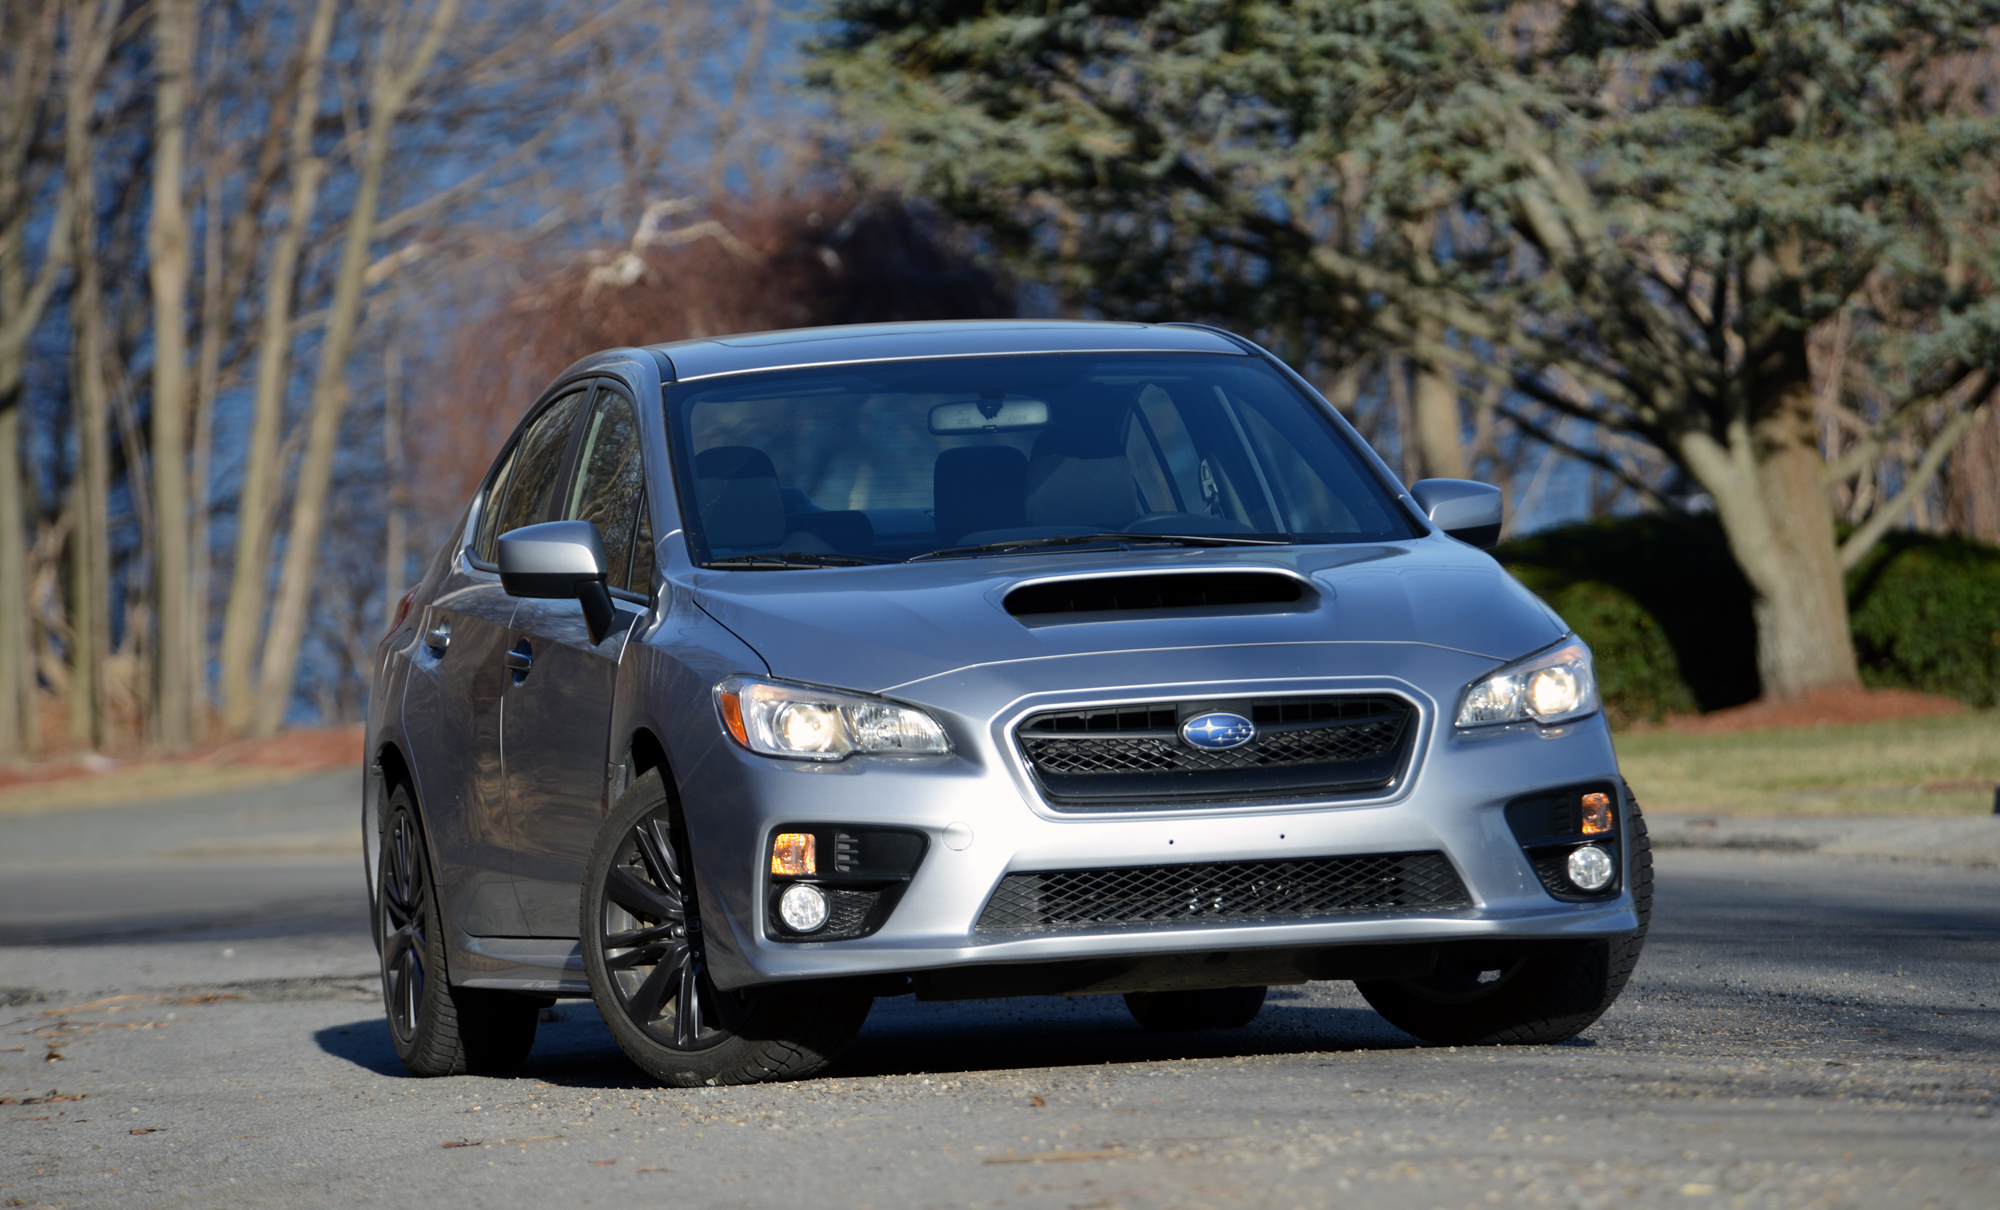 A silver Subaru WRX sedan, the perfect car for winter 2021, shot from the front on a winter day